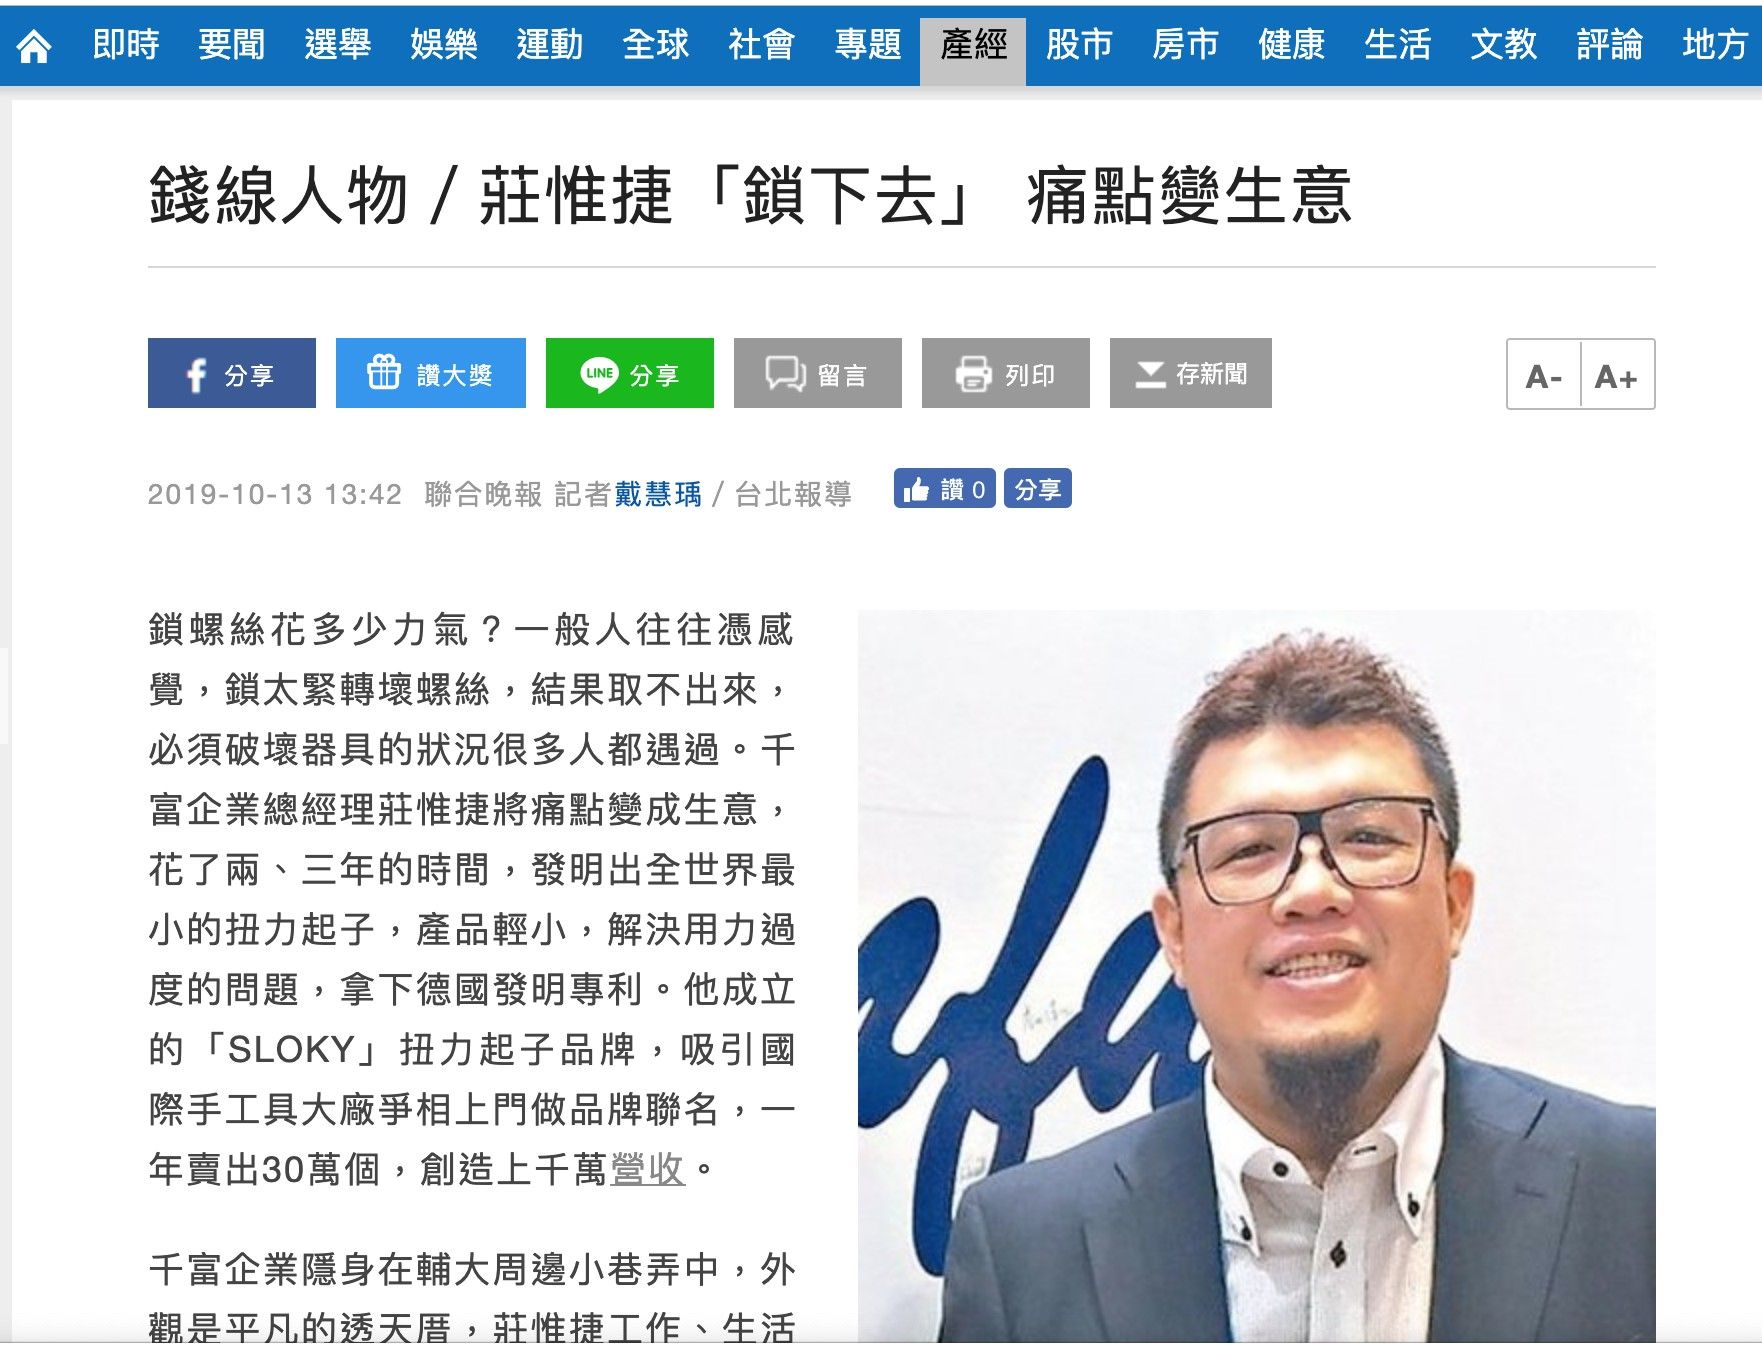 CEO of Chienfu Sloky, Jeff Chuang on Union Evening News